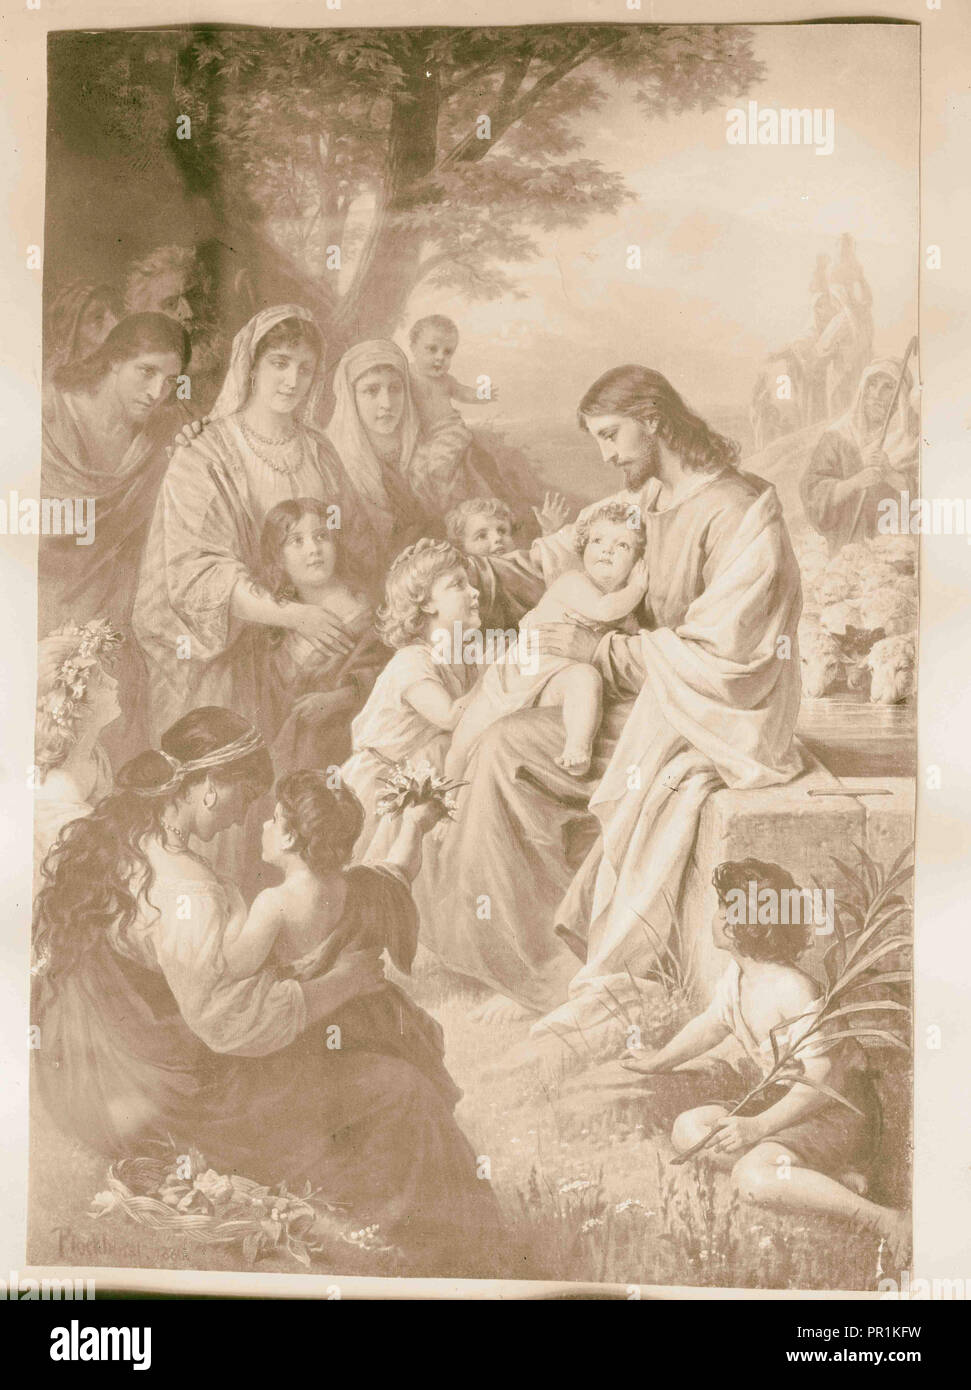 Copy of painting. 'Suffer the little children to come unto me. 1934, Middle East - Stock Image